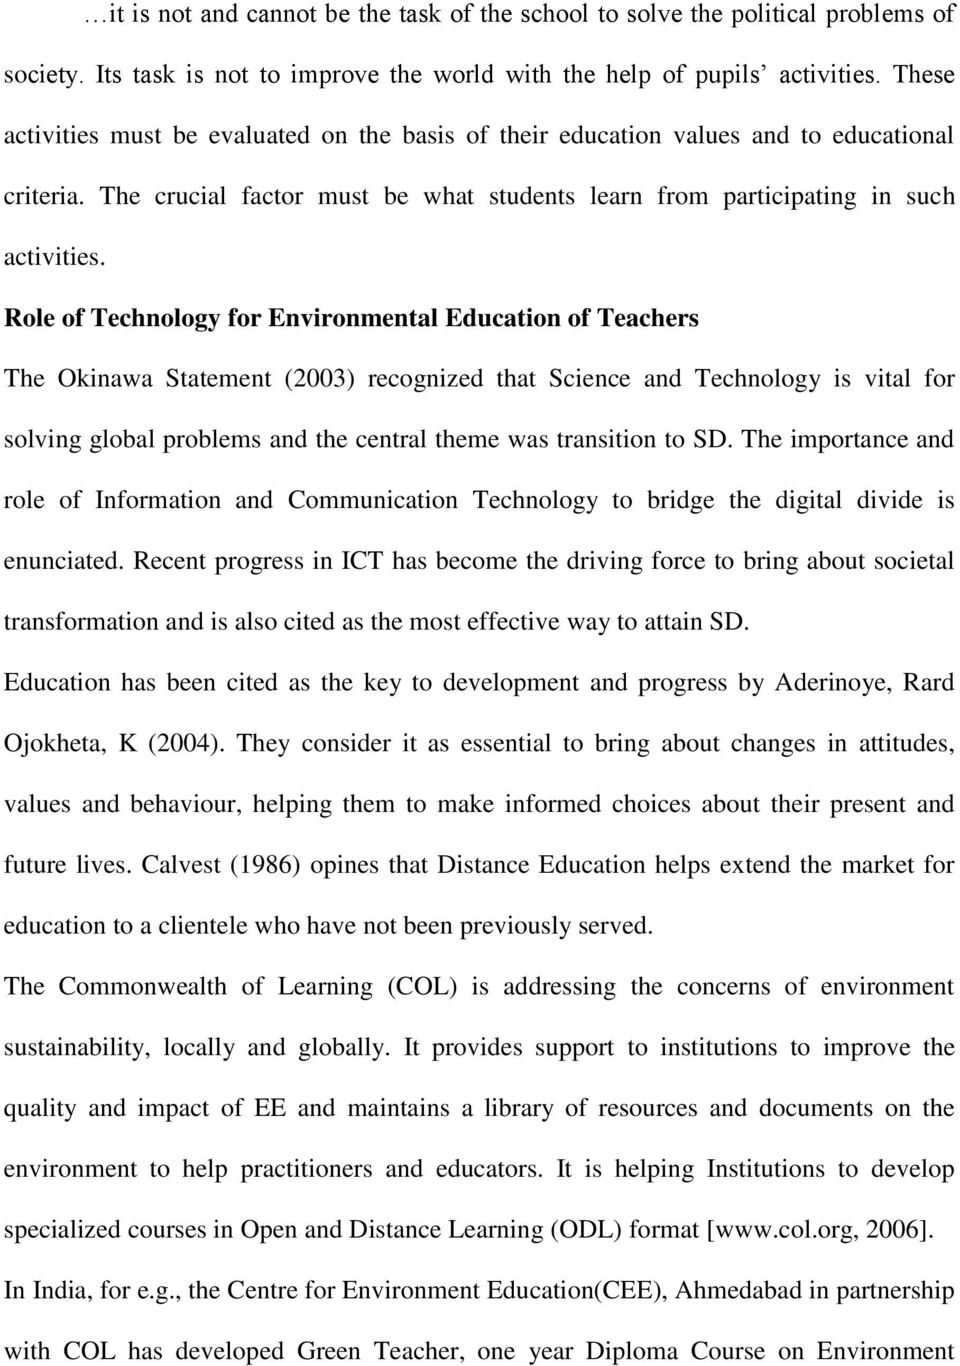 Role of Technology for Environmental Education of Teachers The Okinawa Statement (2003) recognized that Science and Technology is vital for solving global problems and the central theme was